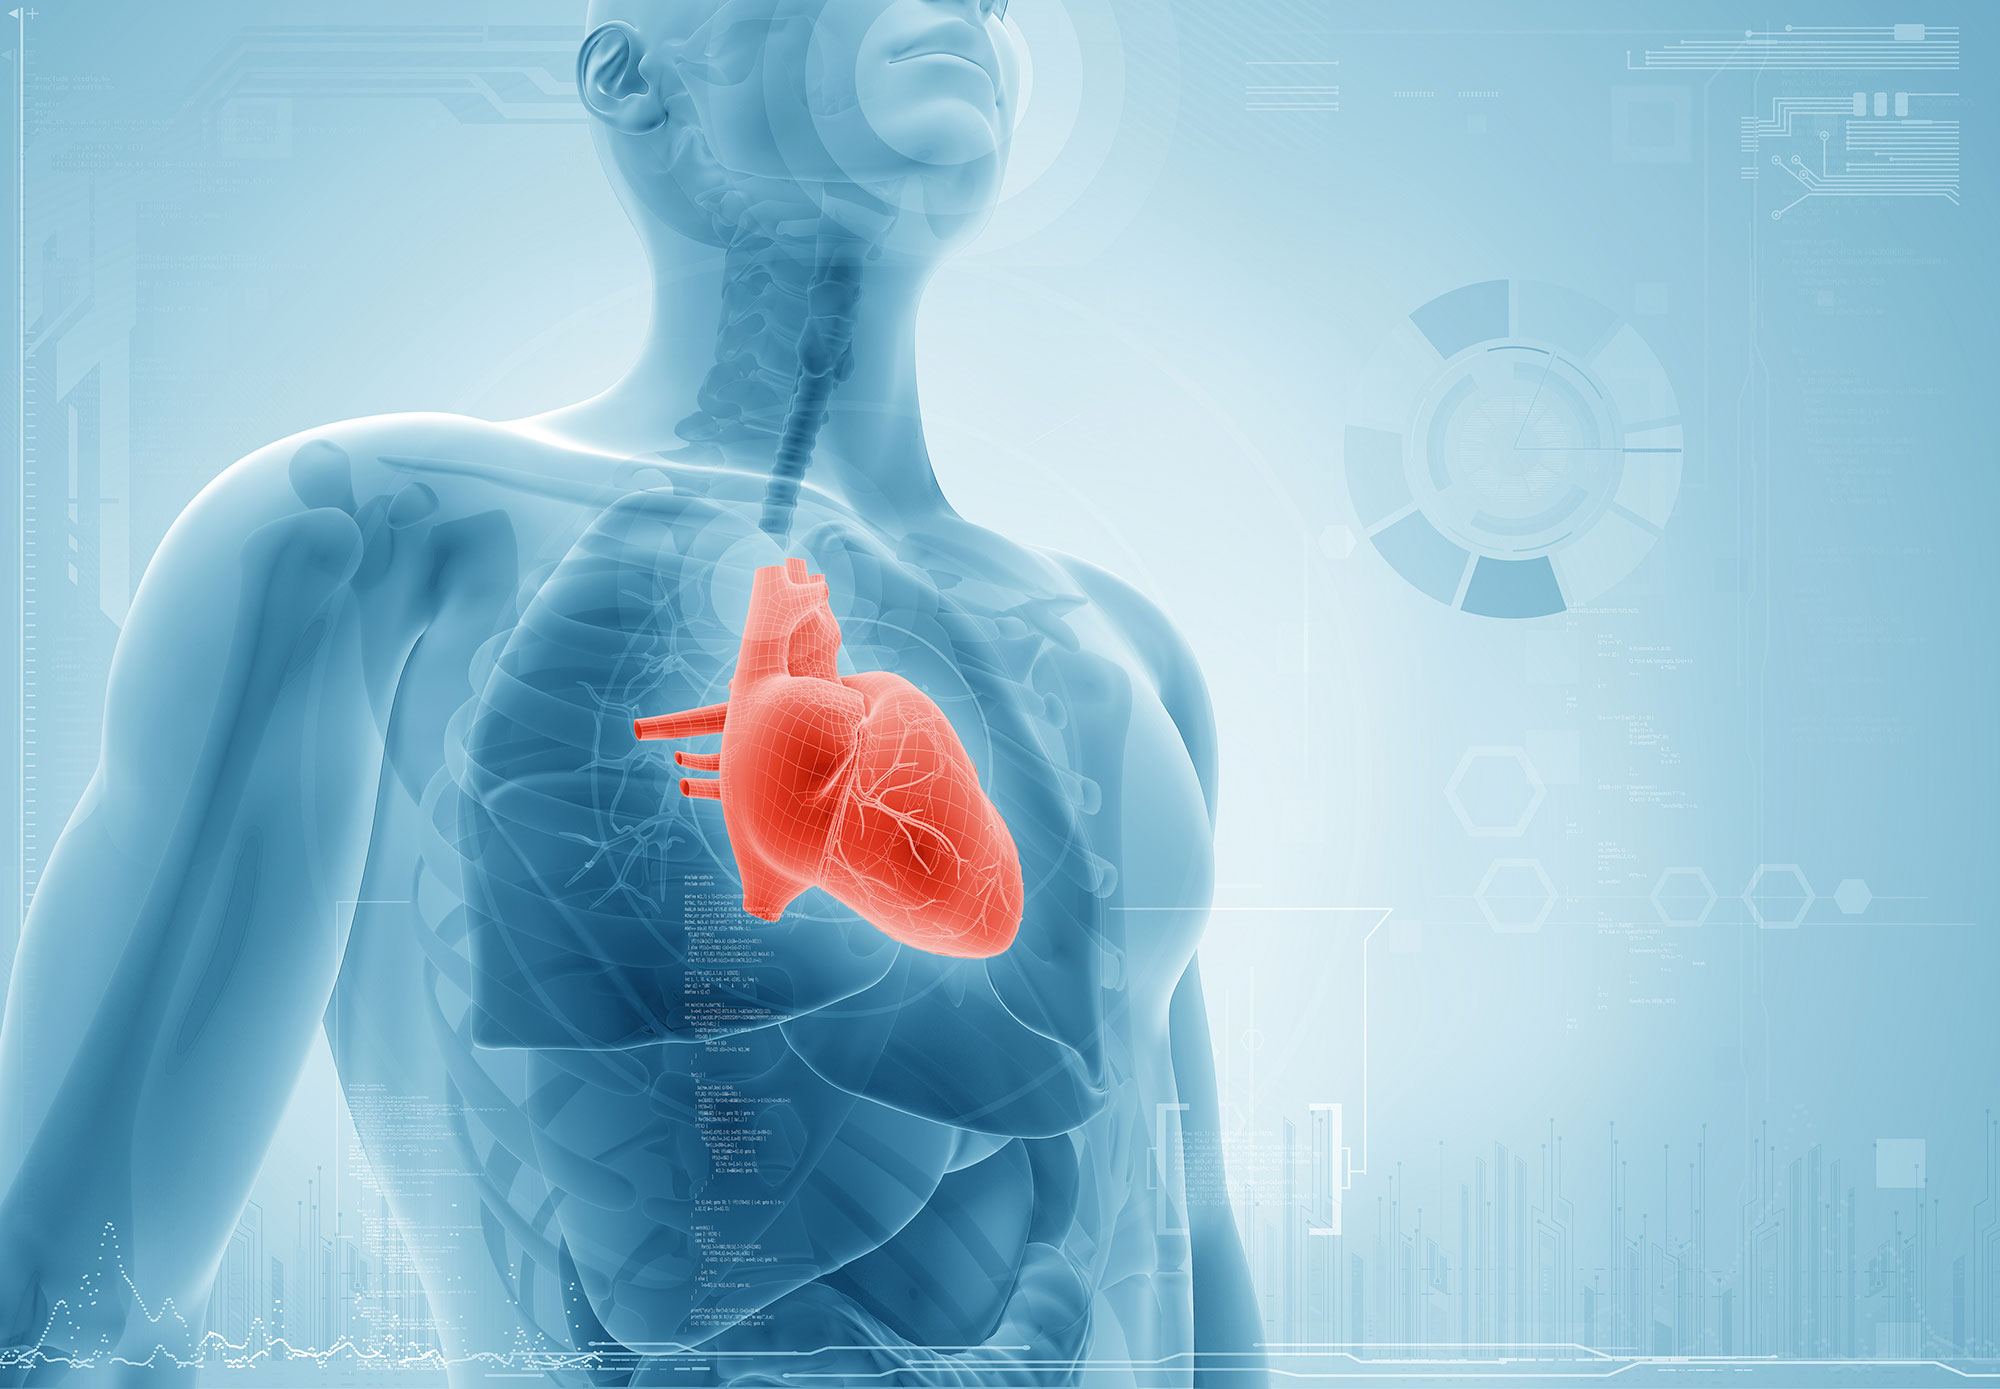 Heart defined within model of a human body